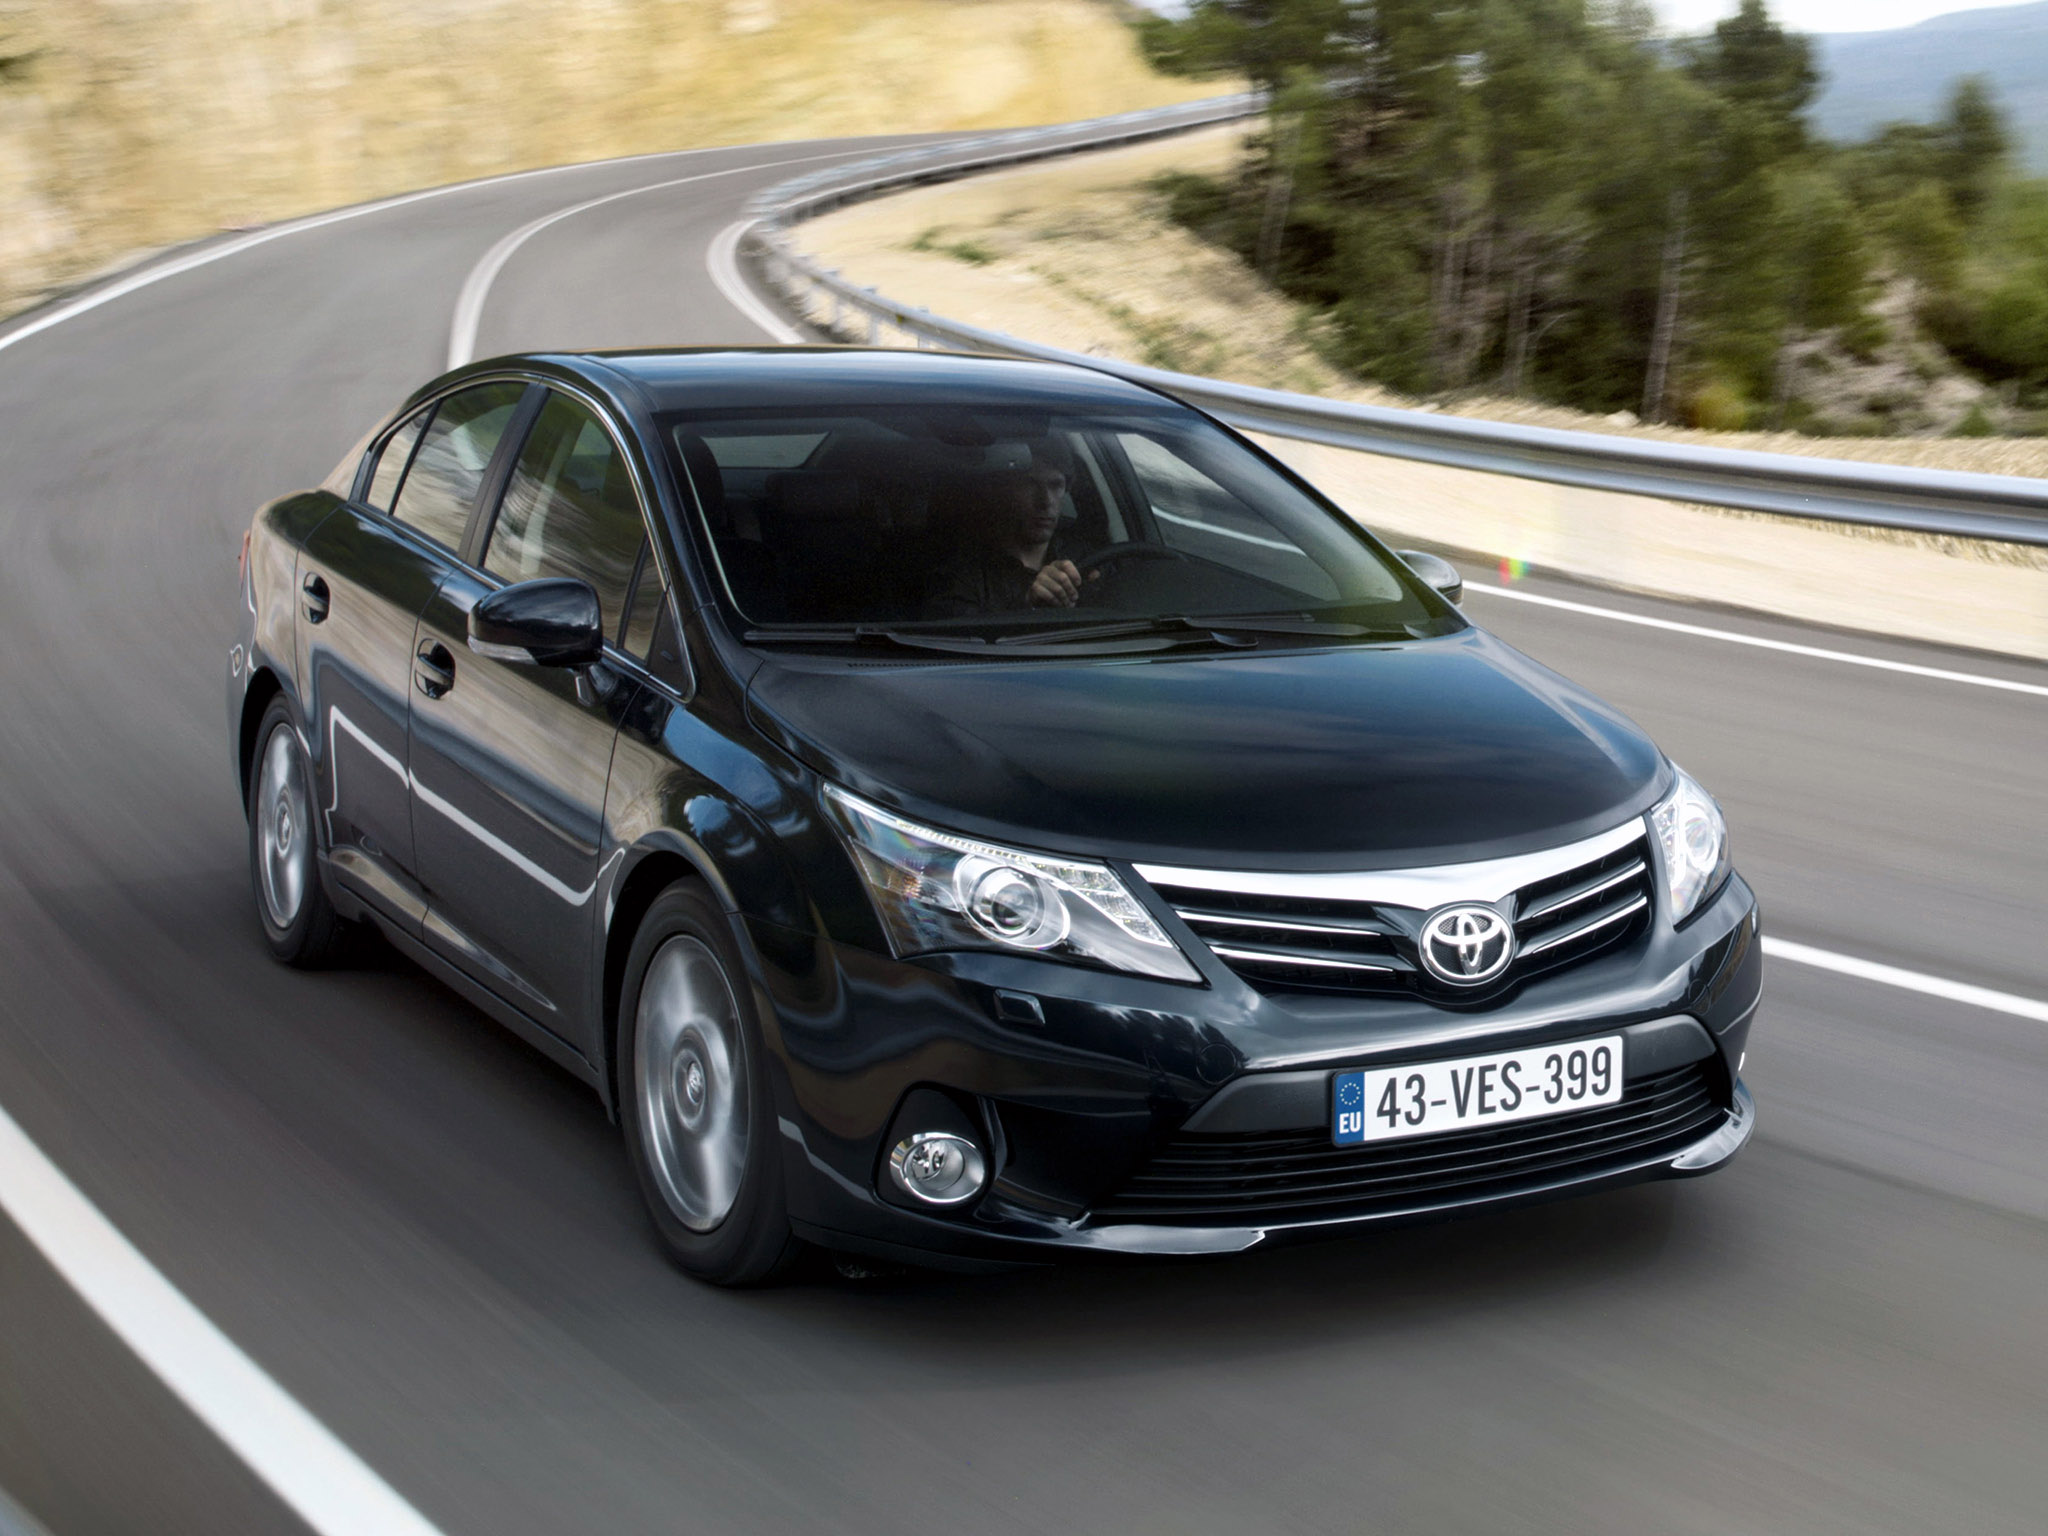 toyota avensis 2011 user manual. Black Bedroom Furniture Sets. Home Design Ideas